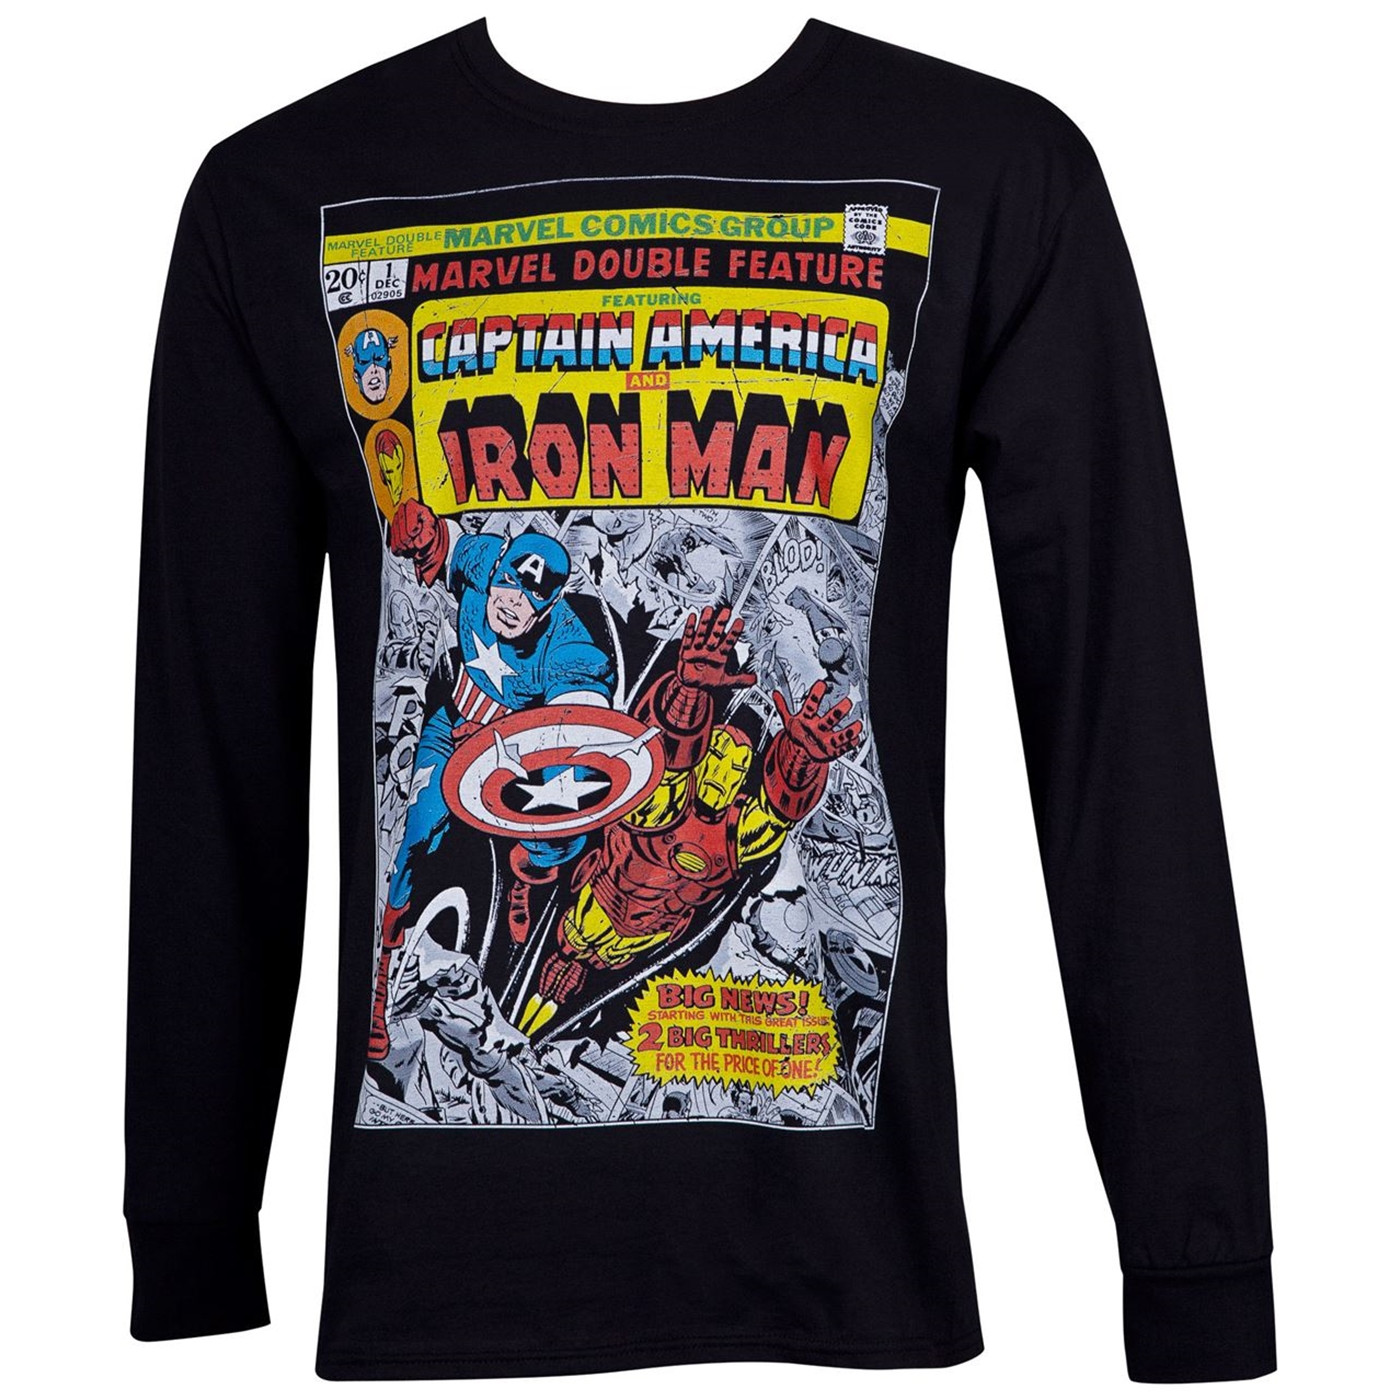 Captain America and Iron Man Double Feature Comic Black Long Sleeve Shirt